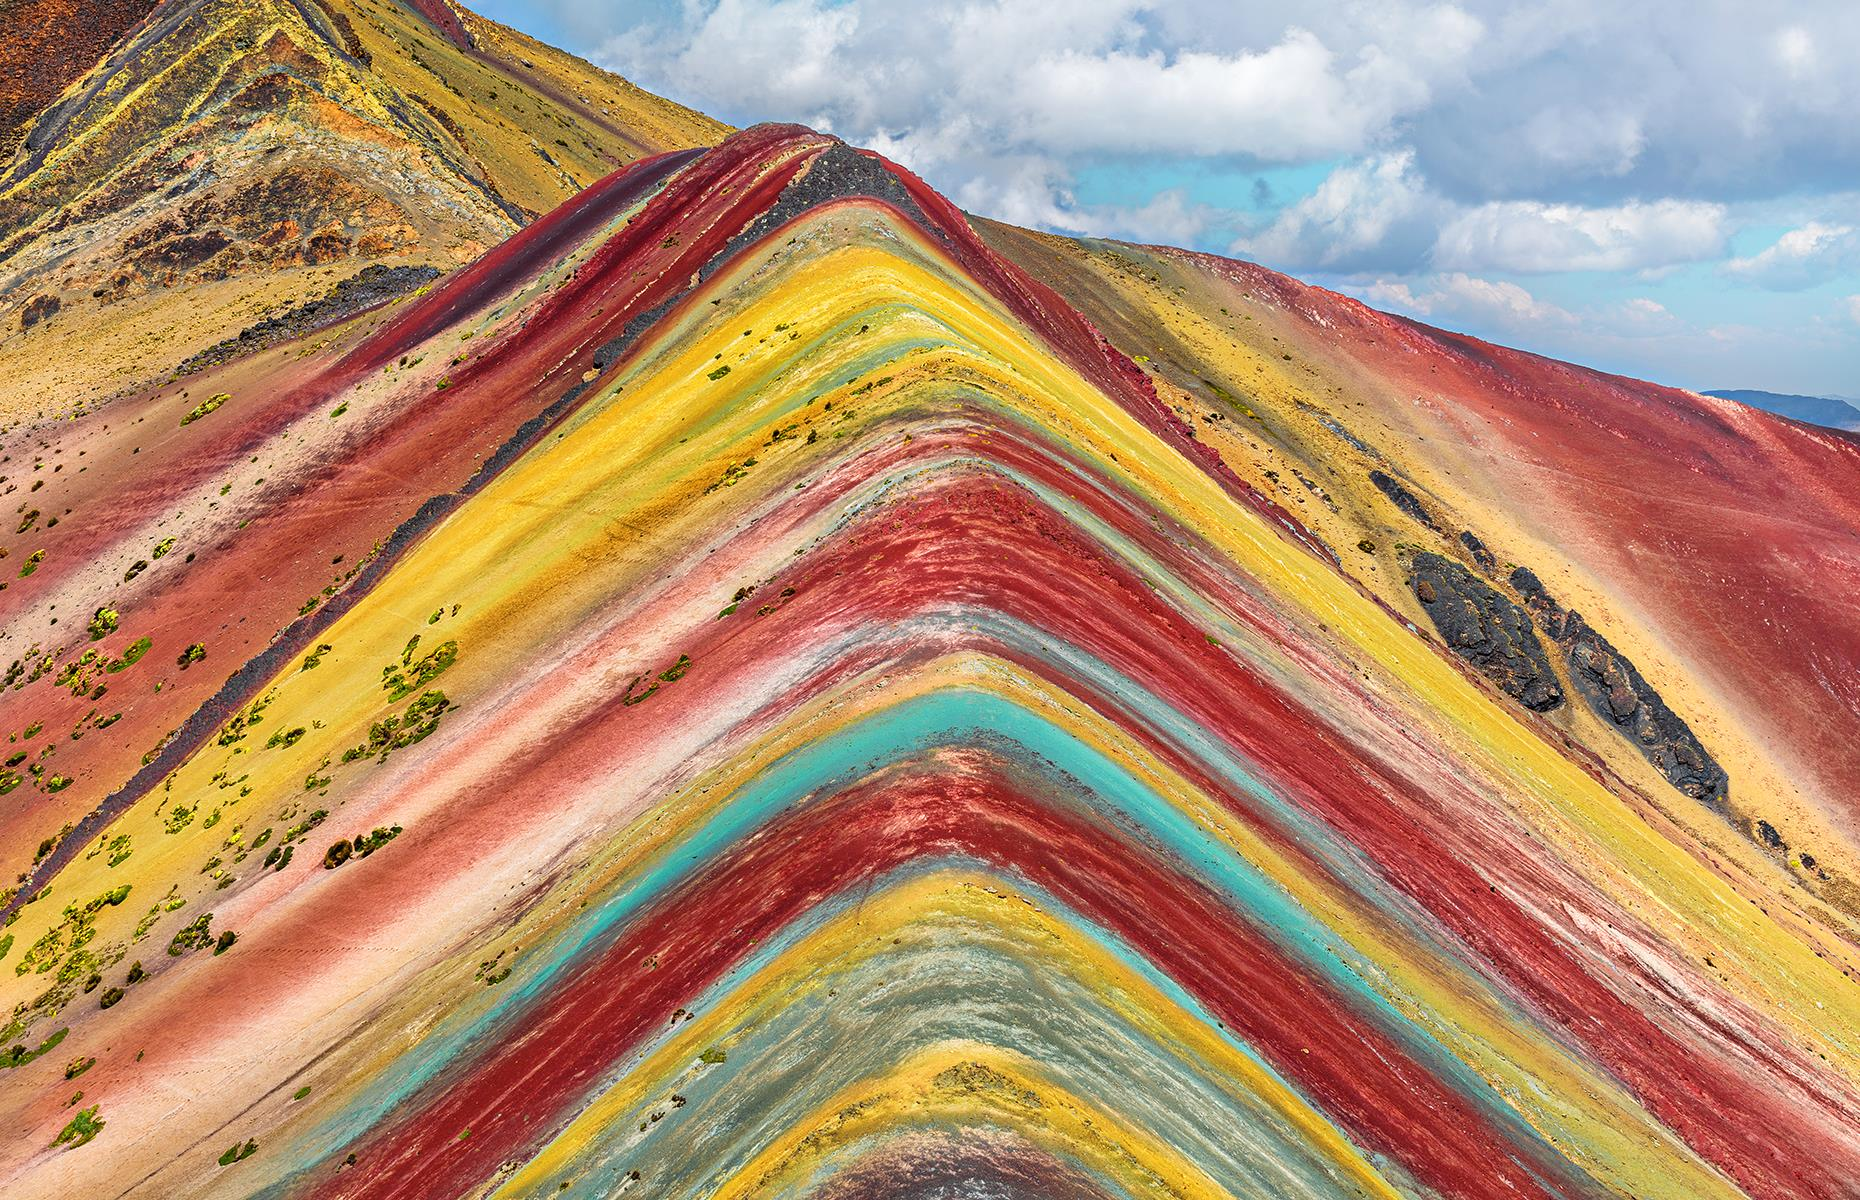 Slide 41 of 43: This multicolored mountain in the Peruvian Andes is not man-made despite what its perfectly symmetrical layers might make you think. The colorful bands, ranging from pink and red to yellow and green, are the result of sedimentary layers forming from mineral deposits over the years.